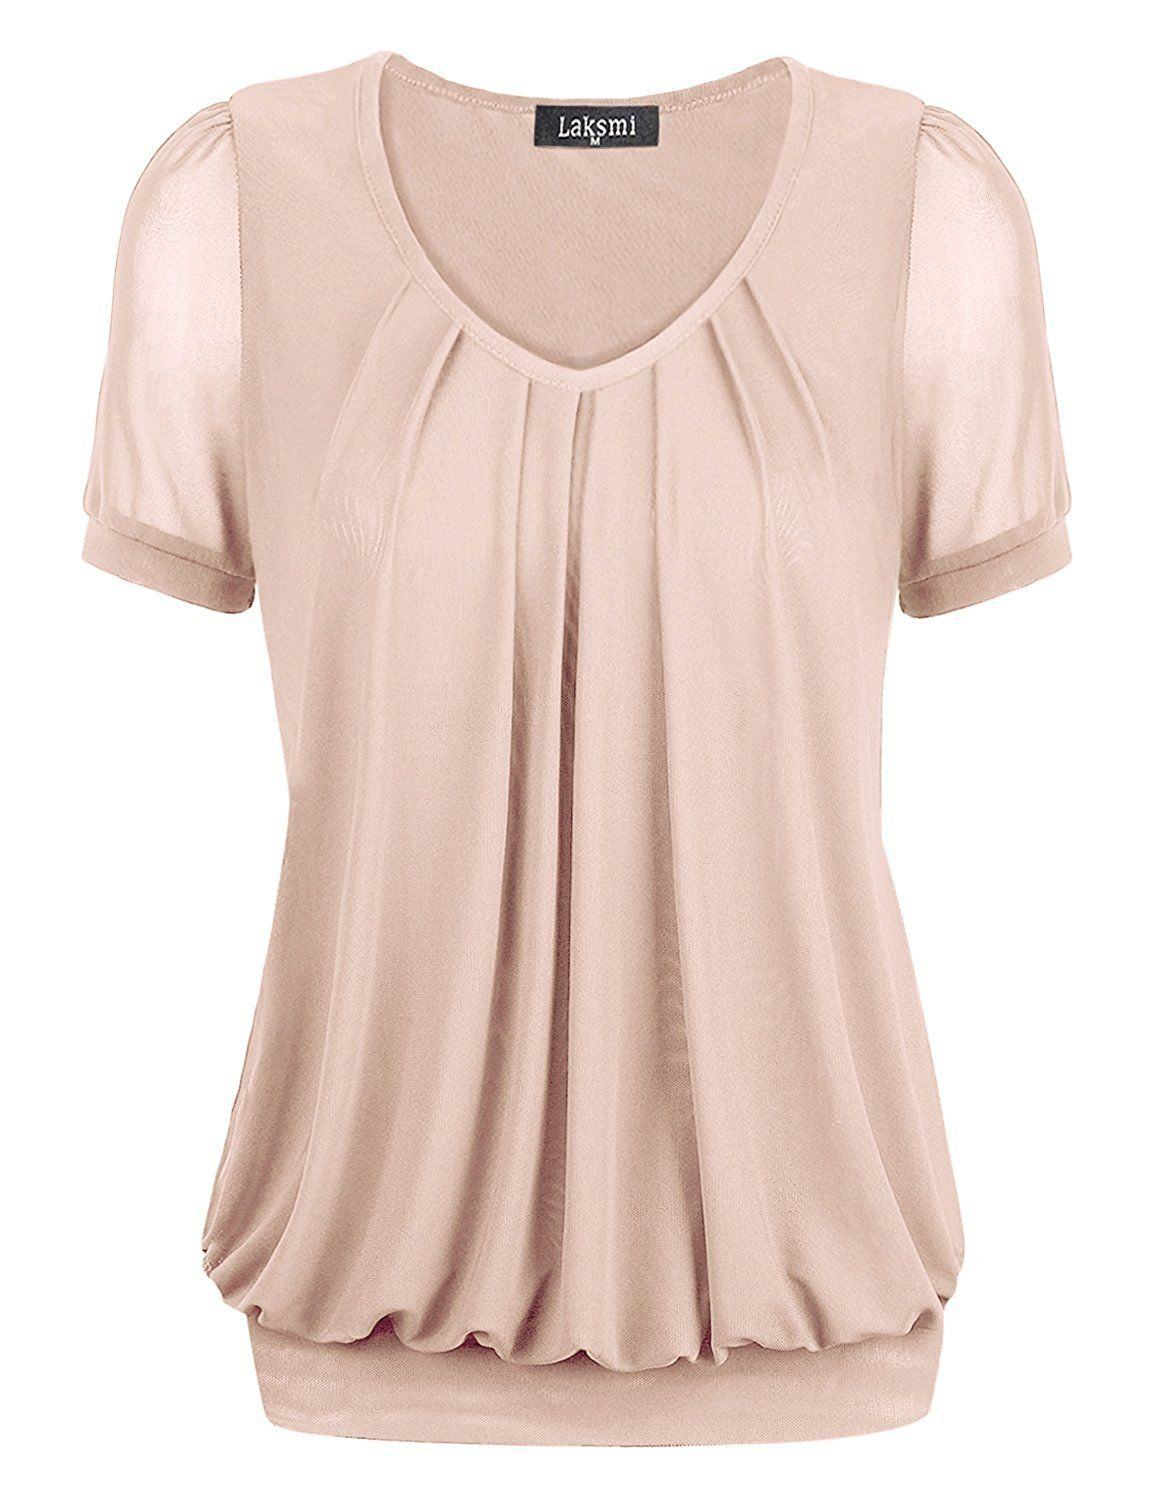 60a504f8859 Laksmi Women's Short Sleeve V-Neck Front Pleated Dressy Tunic Tops at  Amazon Women's Clothing store: